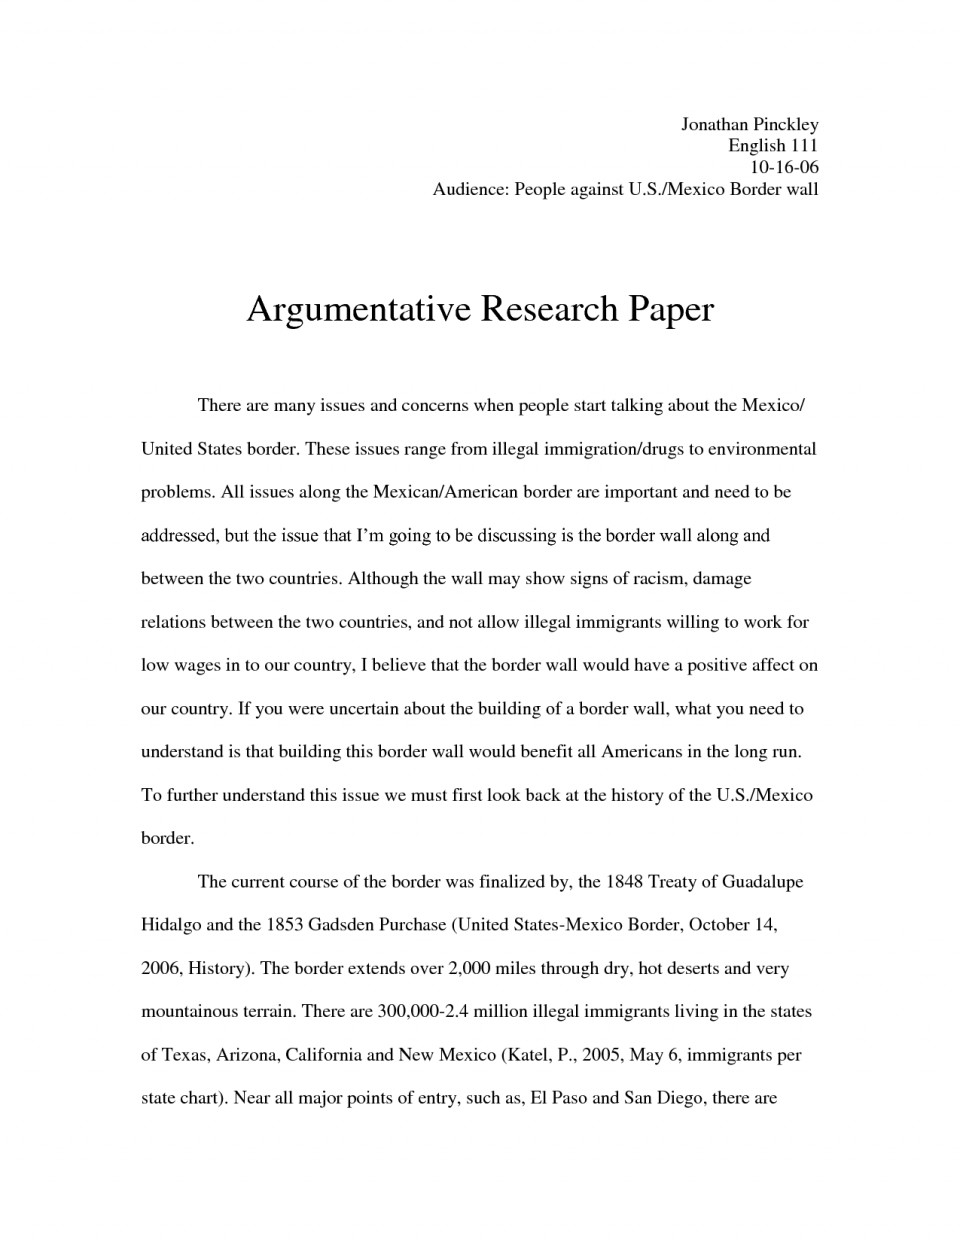 014 Uncategorized Debate20y Argumentative Thesis High School Topics Sentence Starters Outline Worksheet Structure20 For Research Rare A Paper Interesting Medical 960